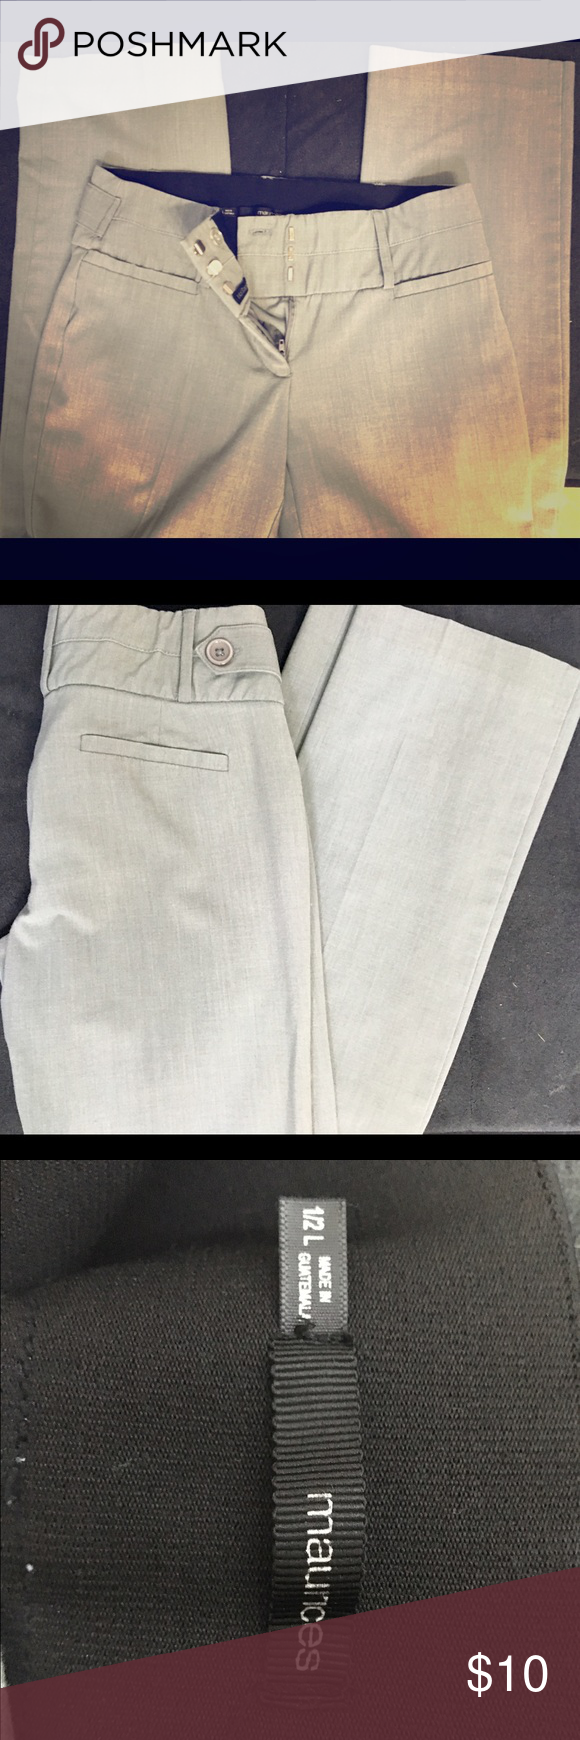 Maurice's Grey Work Slacks Gray, light wear but great shape! Size 1/2 L Maurices Pants Trousers